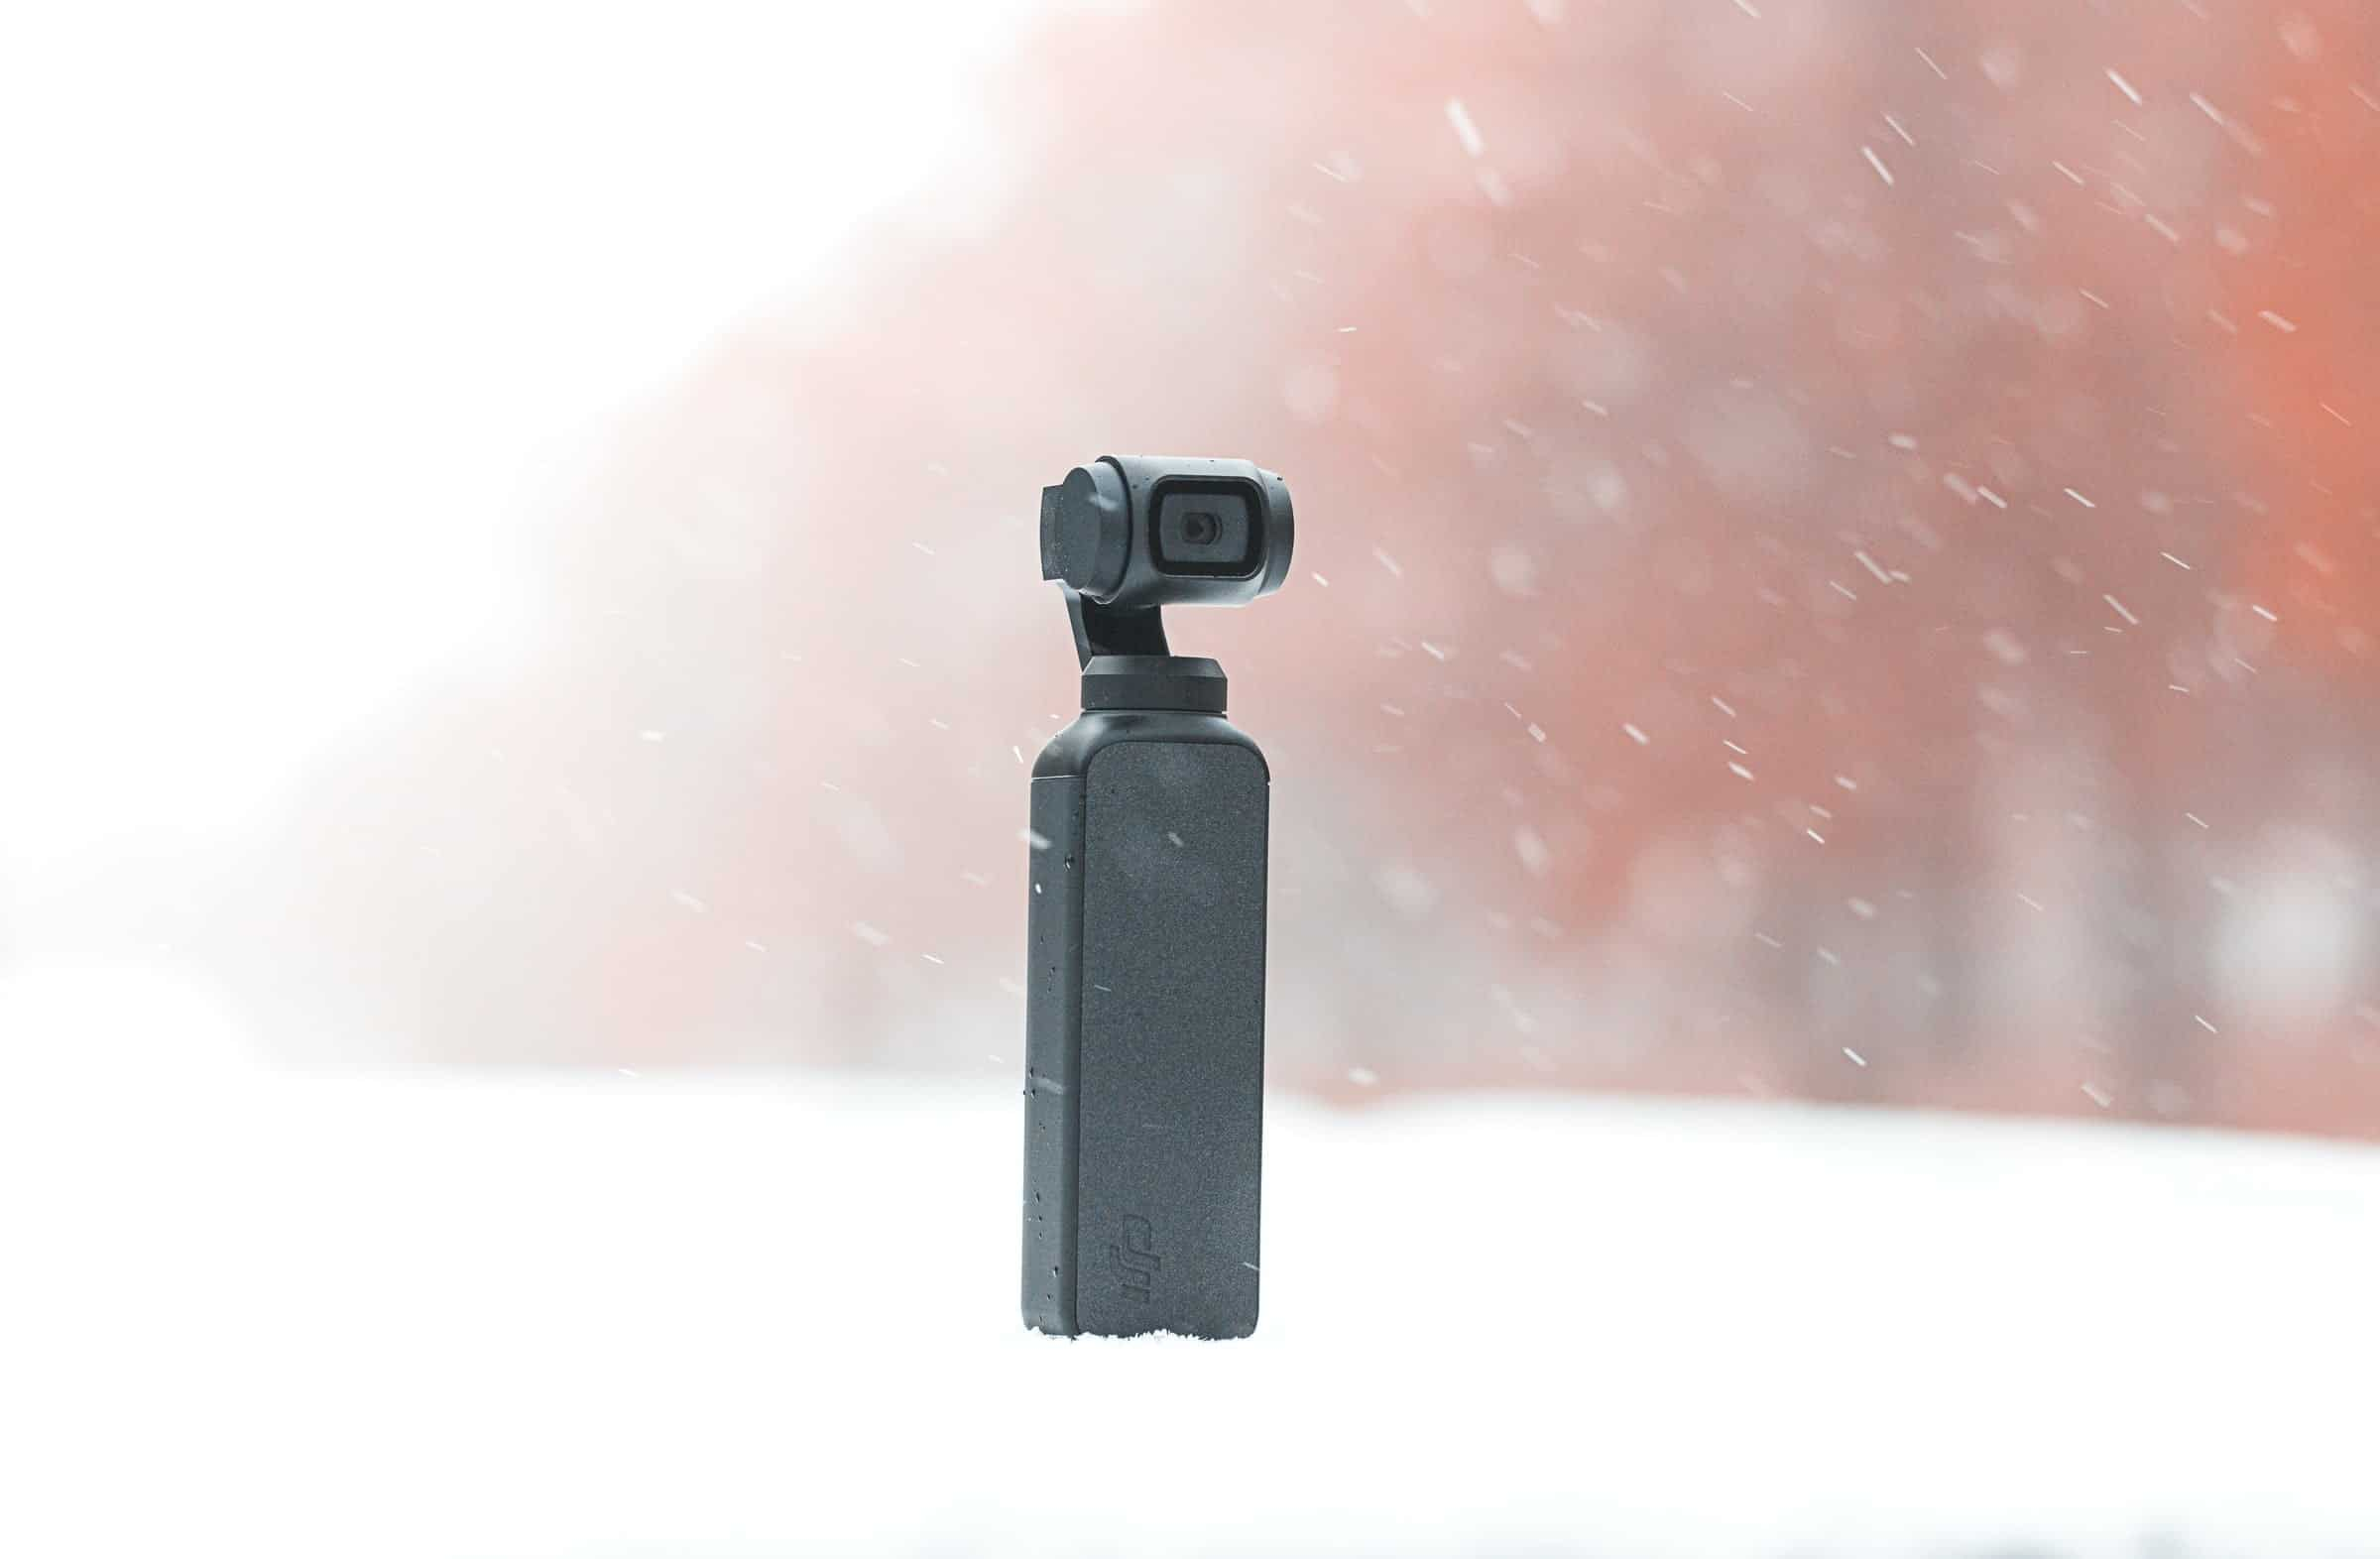 The DJI Pocket 2 is what the Osmo Pocket should have been